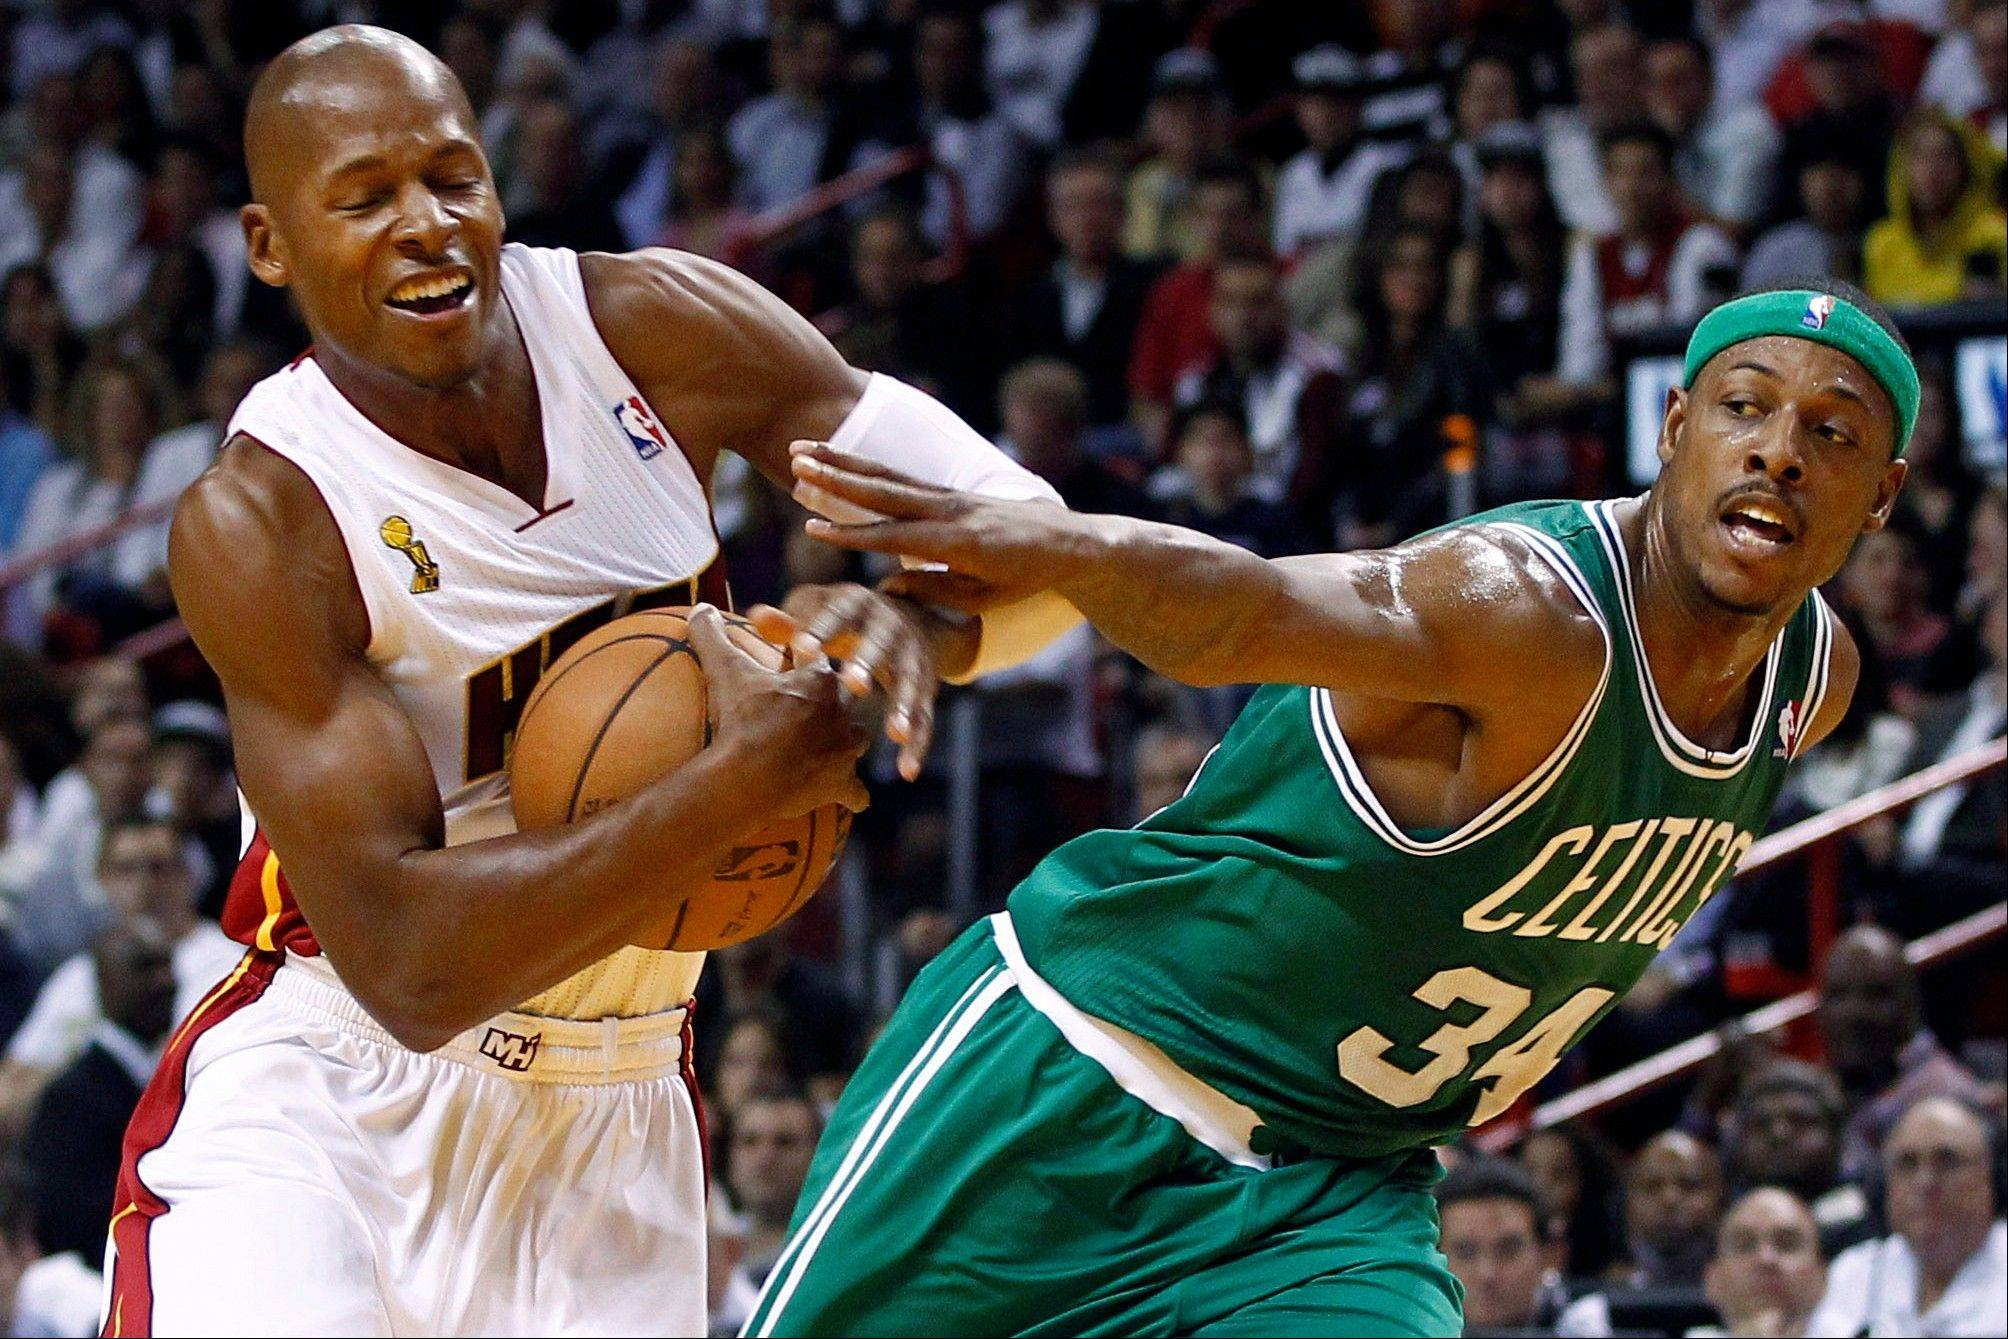 Boston Celtics forward Paul Pierce fouls Miami Heat guard Ray Allen, left, Tuesday during the first half in Miami.